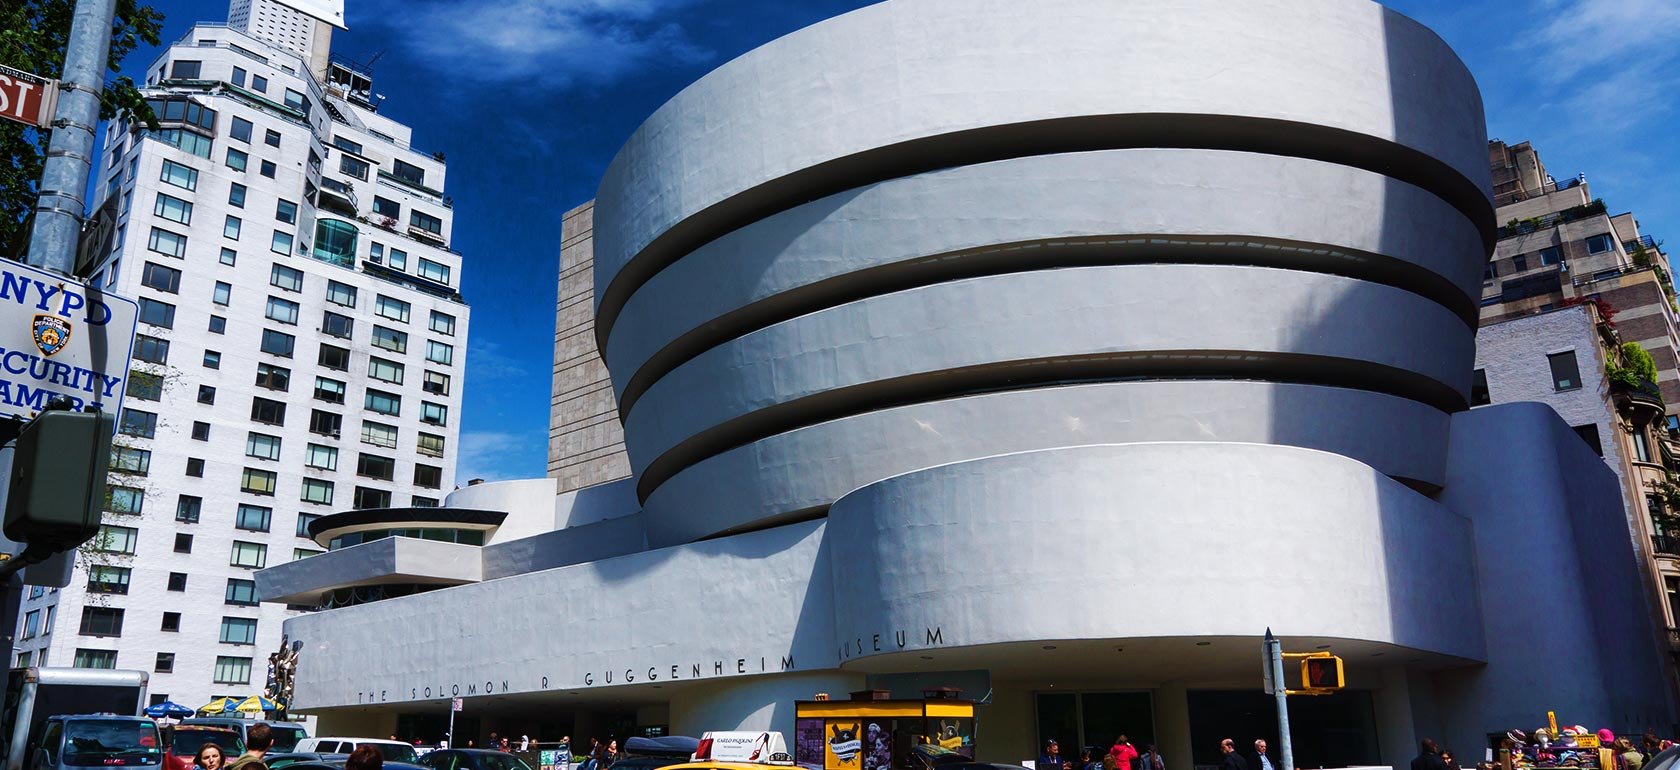 Solomon R. Guggenheim Museum One of the finest modern art galleries in the world, the world-recognised Guggenheim Museum is a can't-miss for art lovers with the New York pass. Free and Skip The Line entry to the Guggenheim Museum Normally $ - Free with New York Pass.